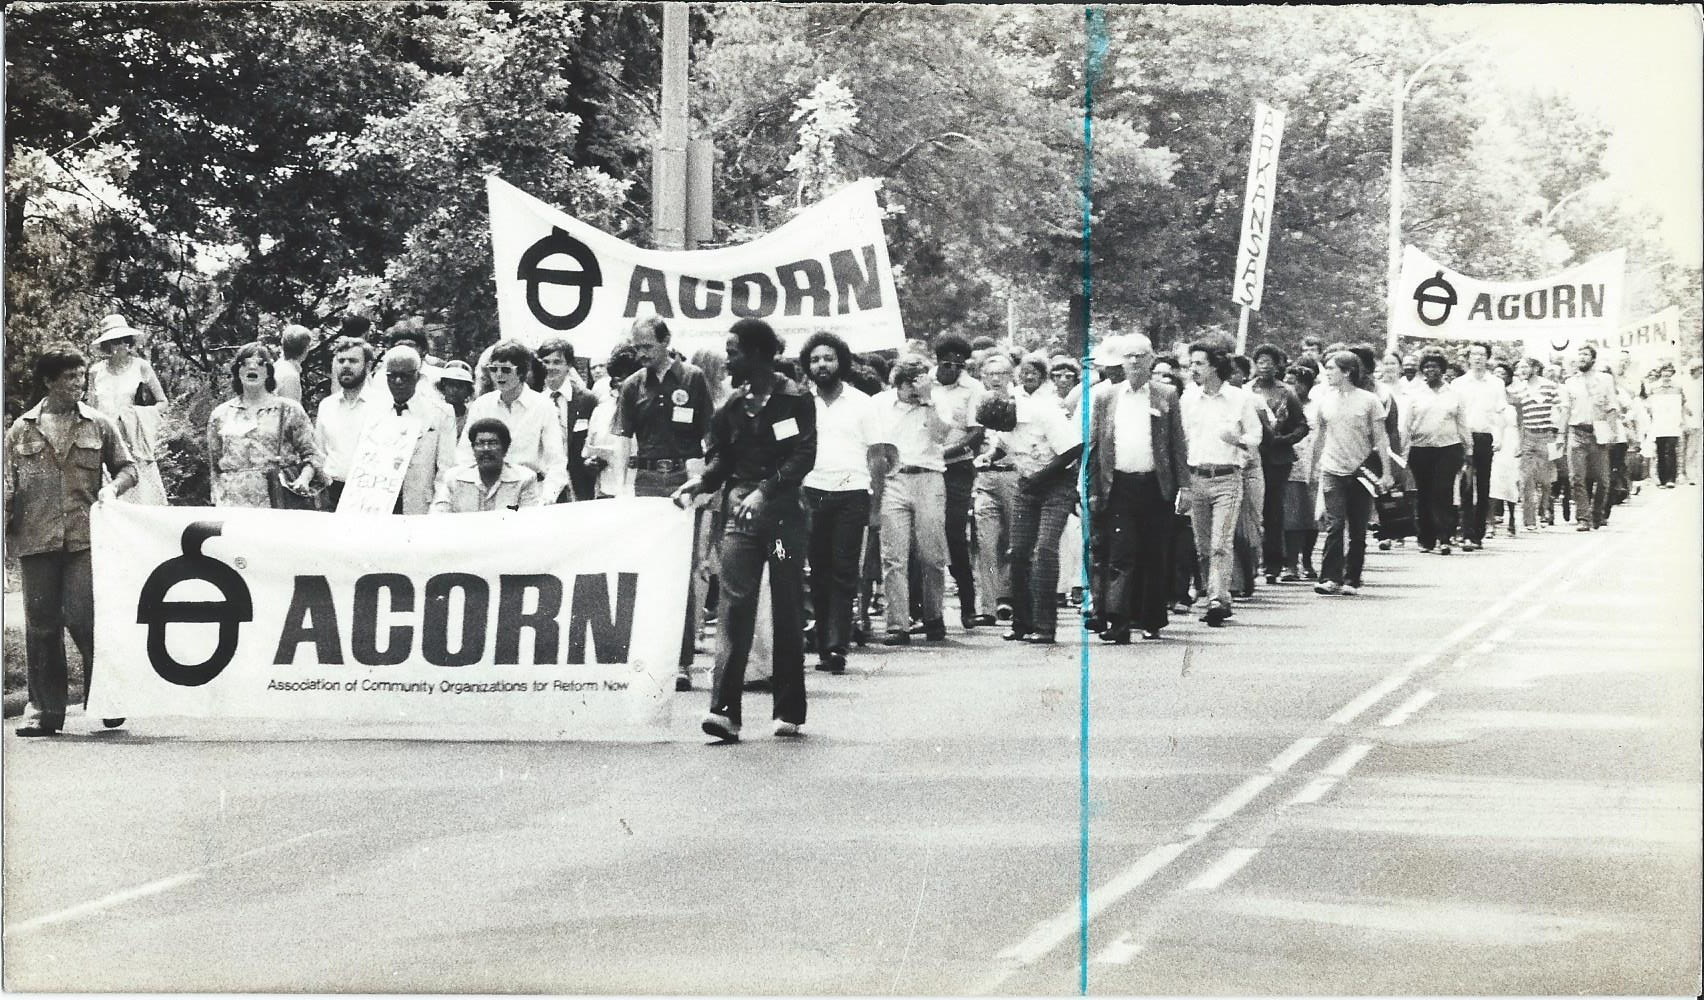 St. Louis March Line 1979 McDonald, Dale, and Others